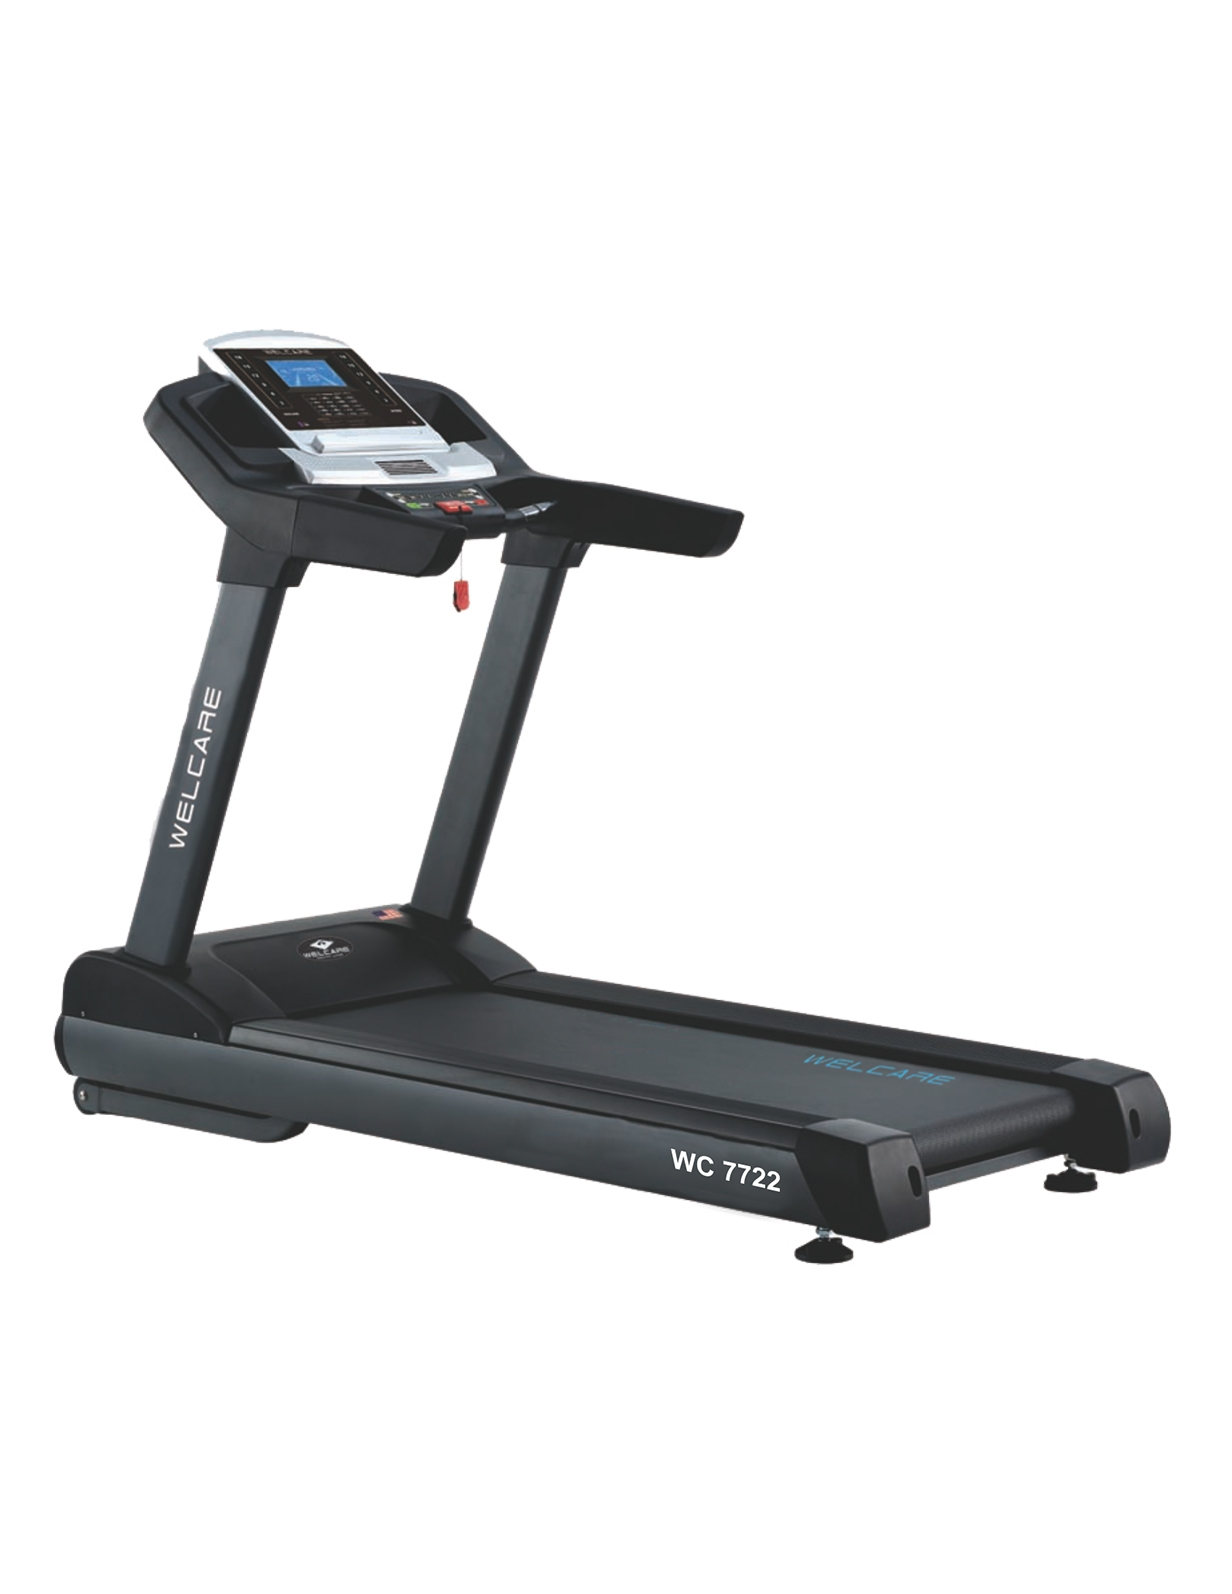 WC 7722 MOTORIZED TREADMILL